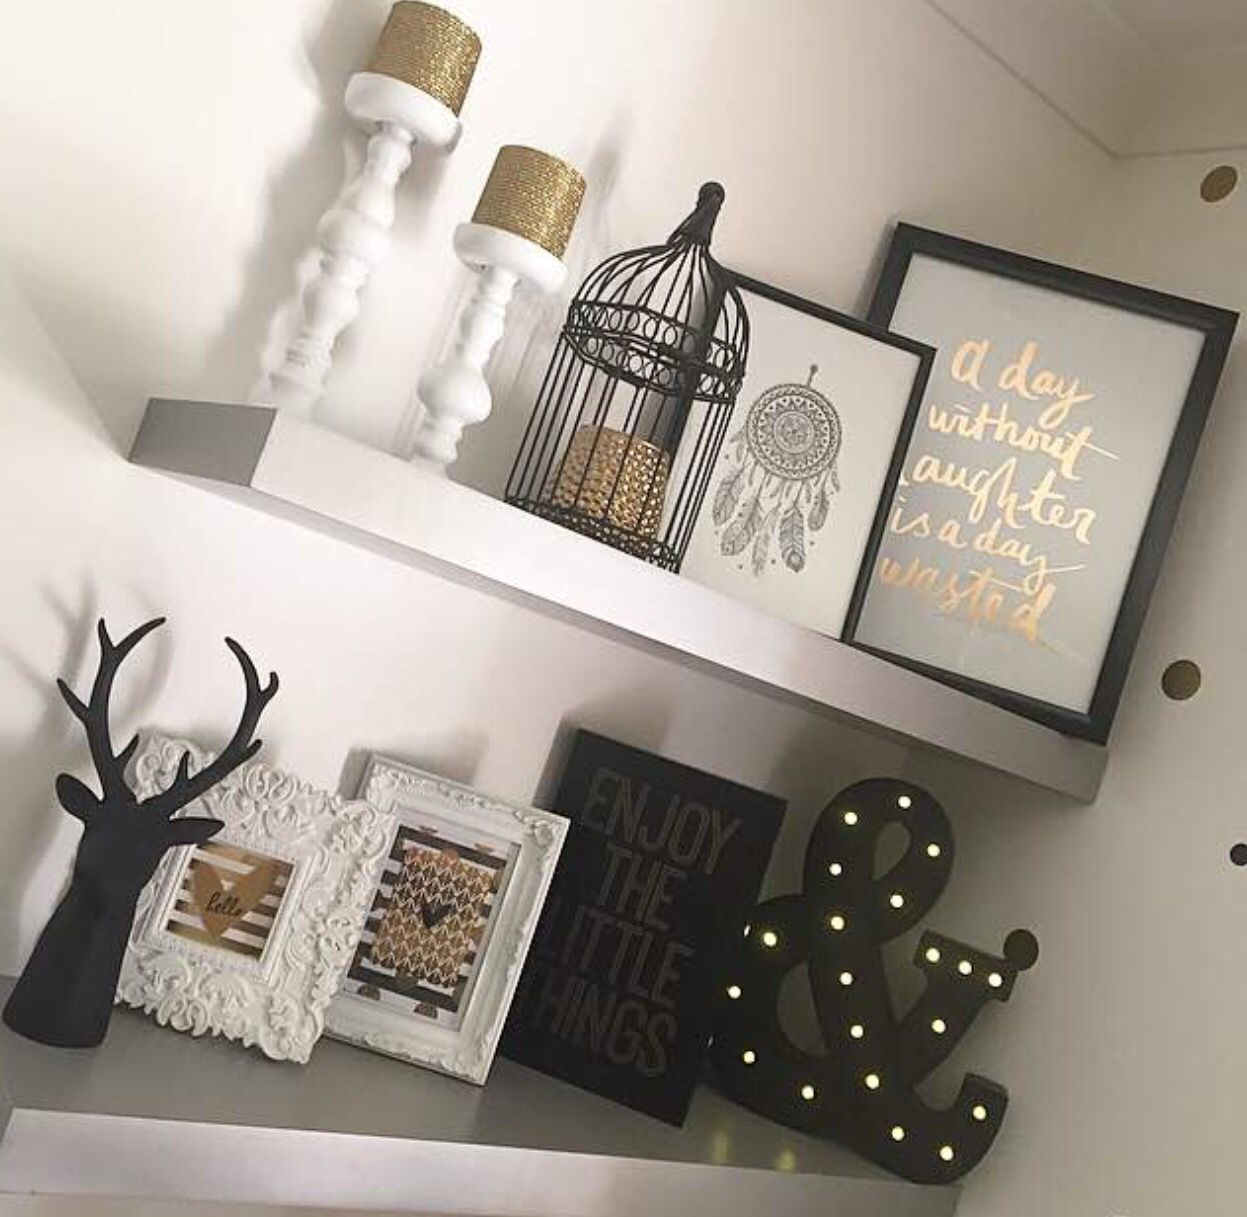 Pin by Jasmine on Home decor - Kmart inspired